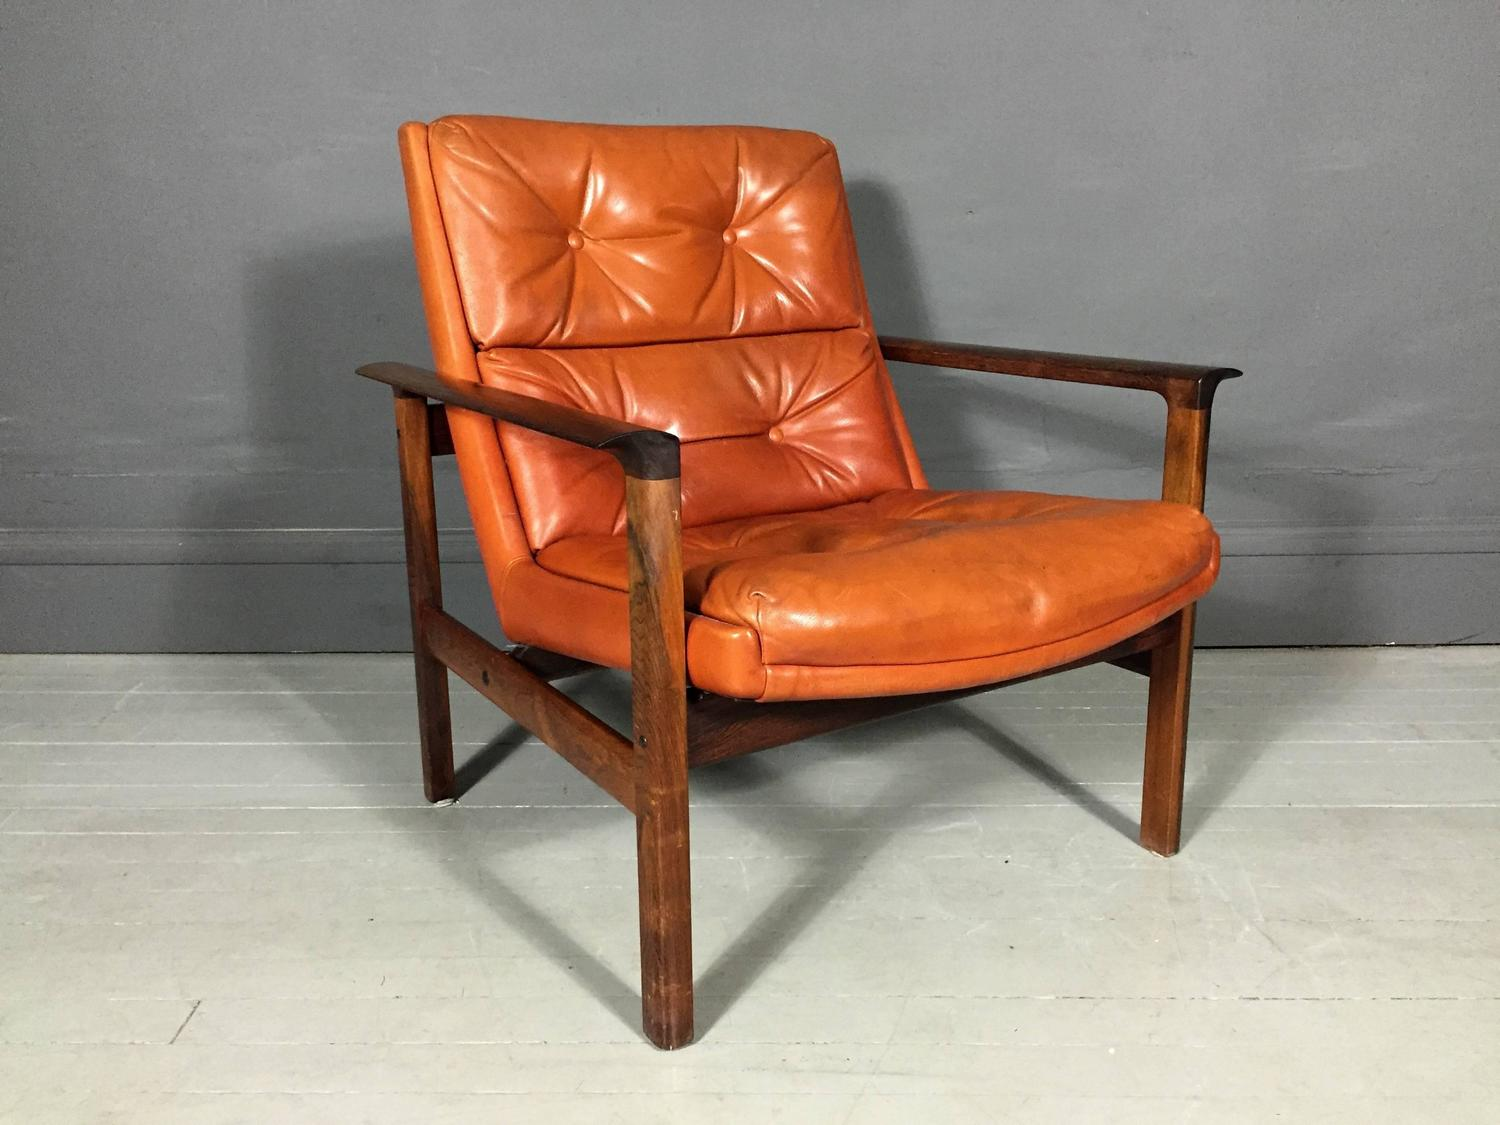 Orange Leather Chair Rosewood And Orange Leather Lounge Chair Fredrik Kayser